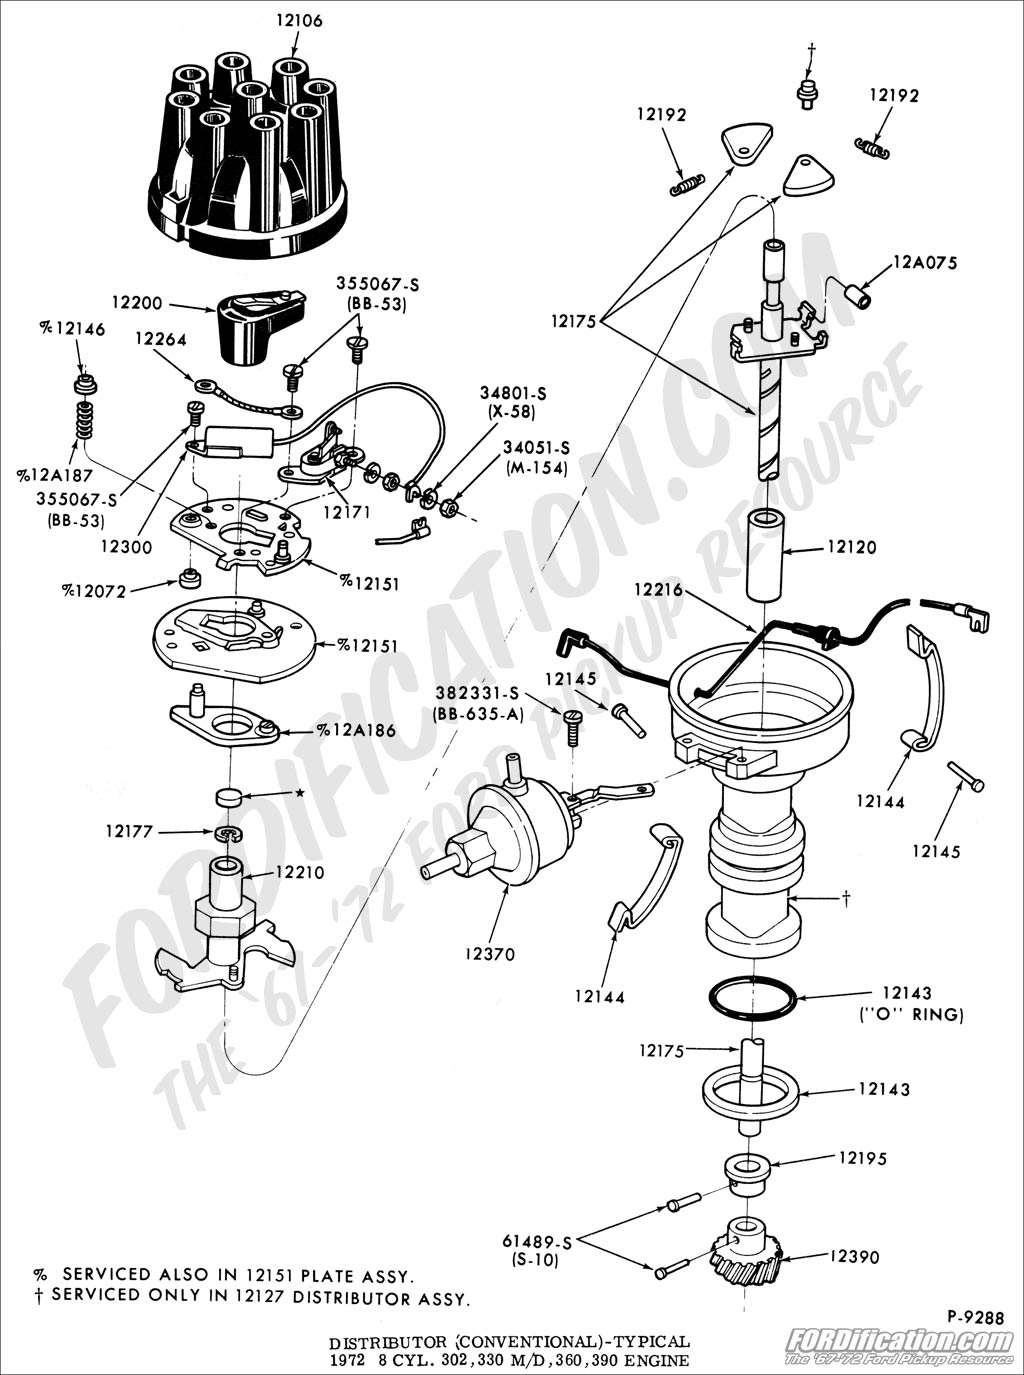 Honda Distributor Parts Diagram Smart Wiring Diagrams 2000 Civic Transmission Services Engine All Kind Of U2022 Rh Investatlanta Co 95 Lx Starter 2001